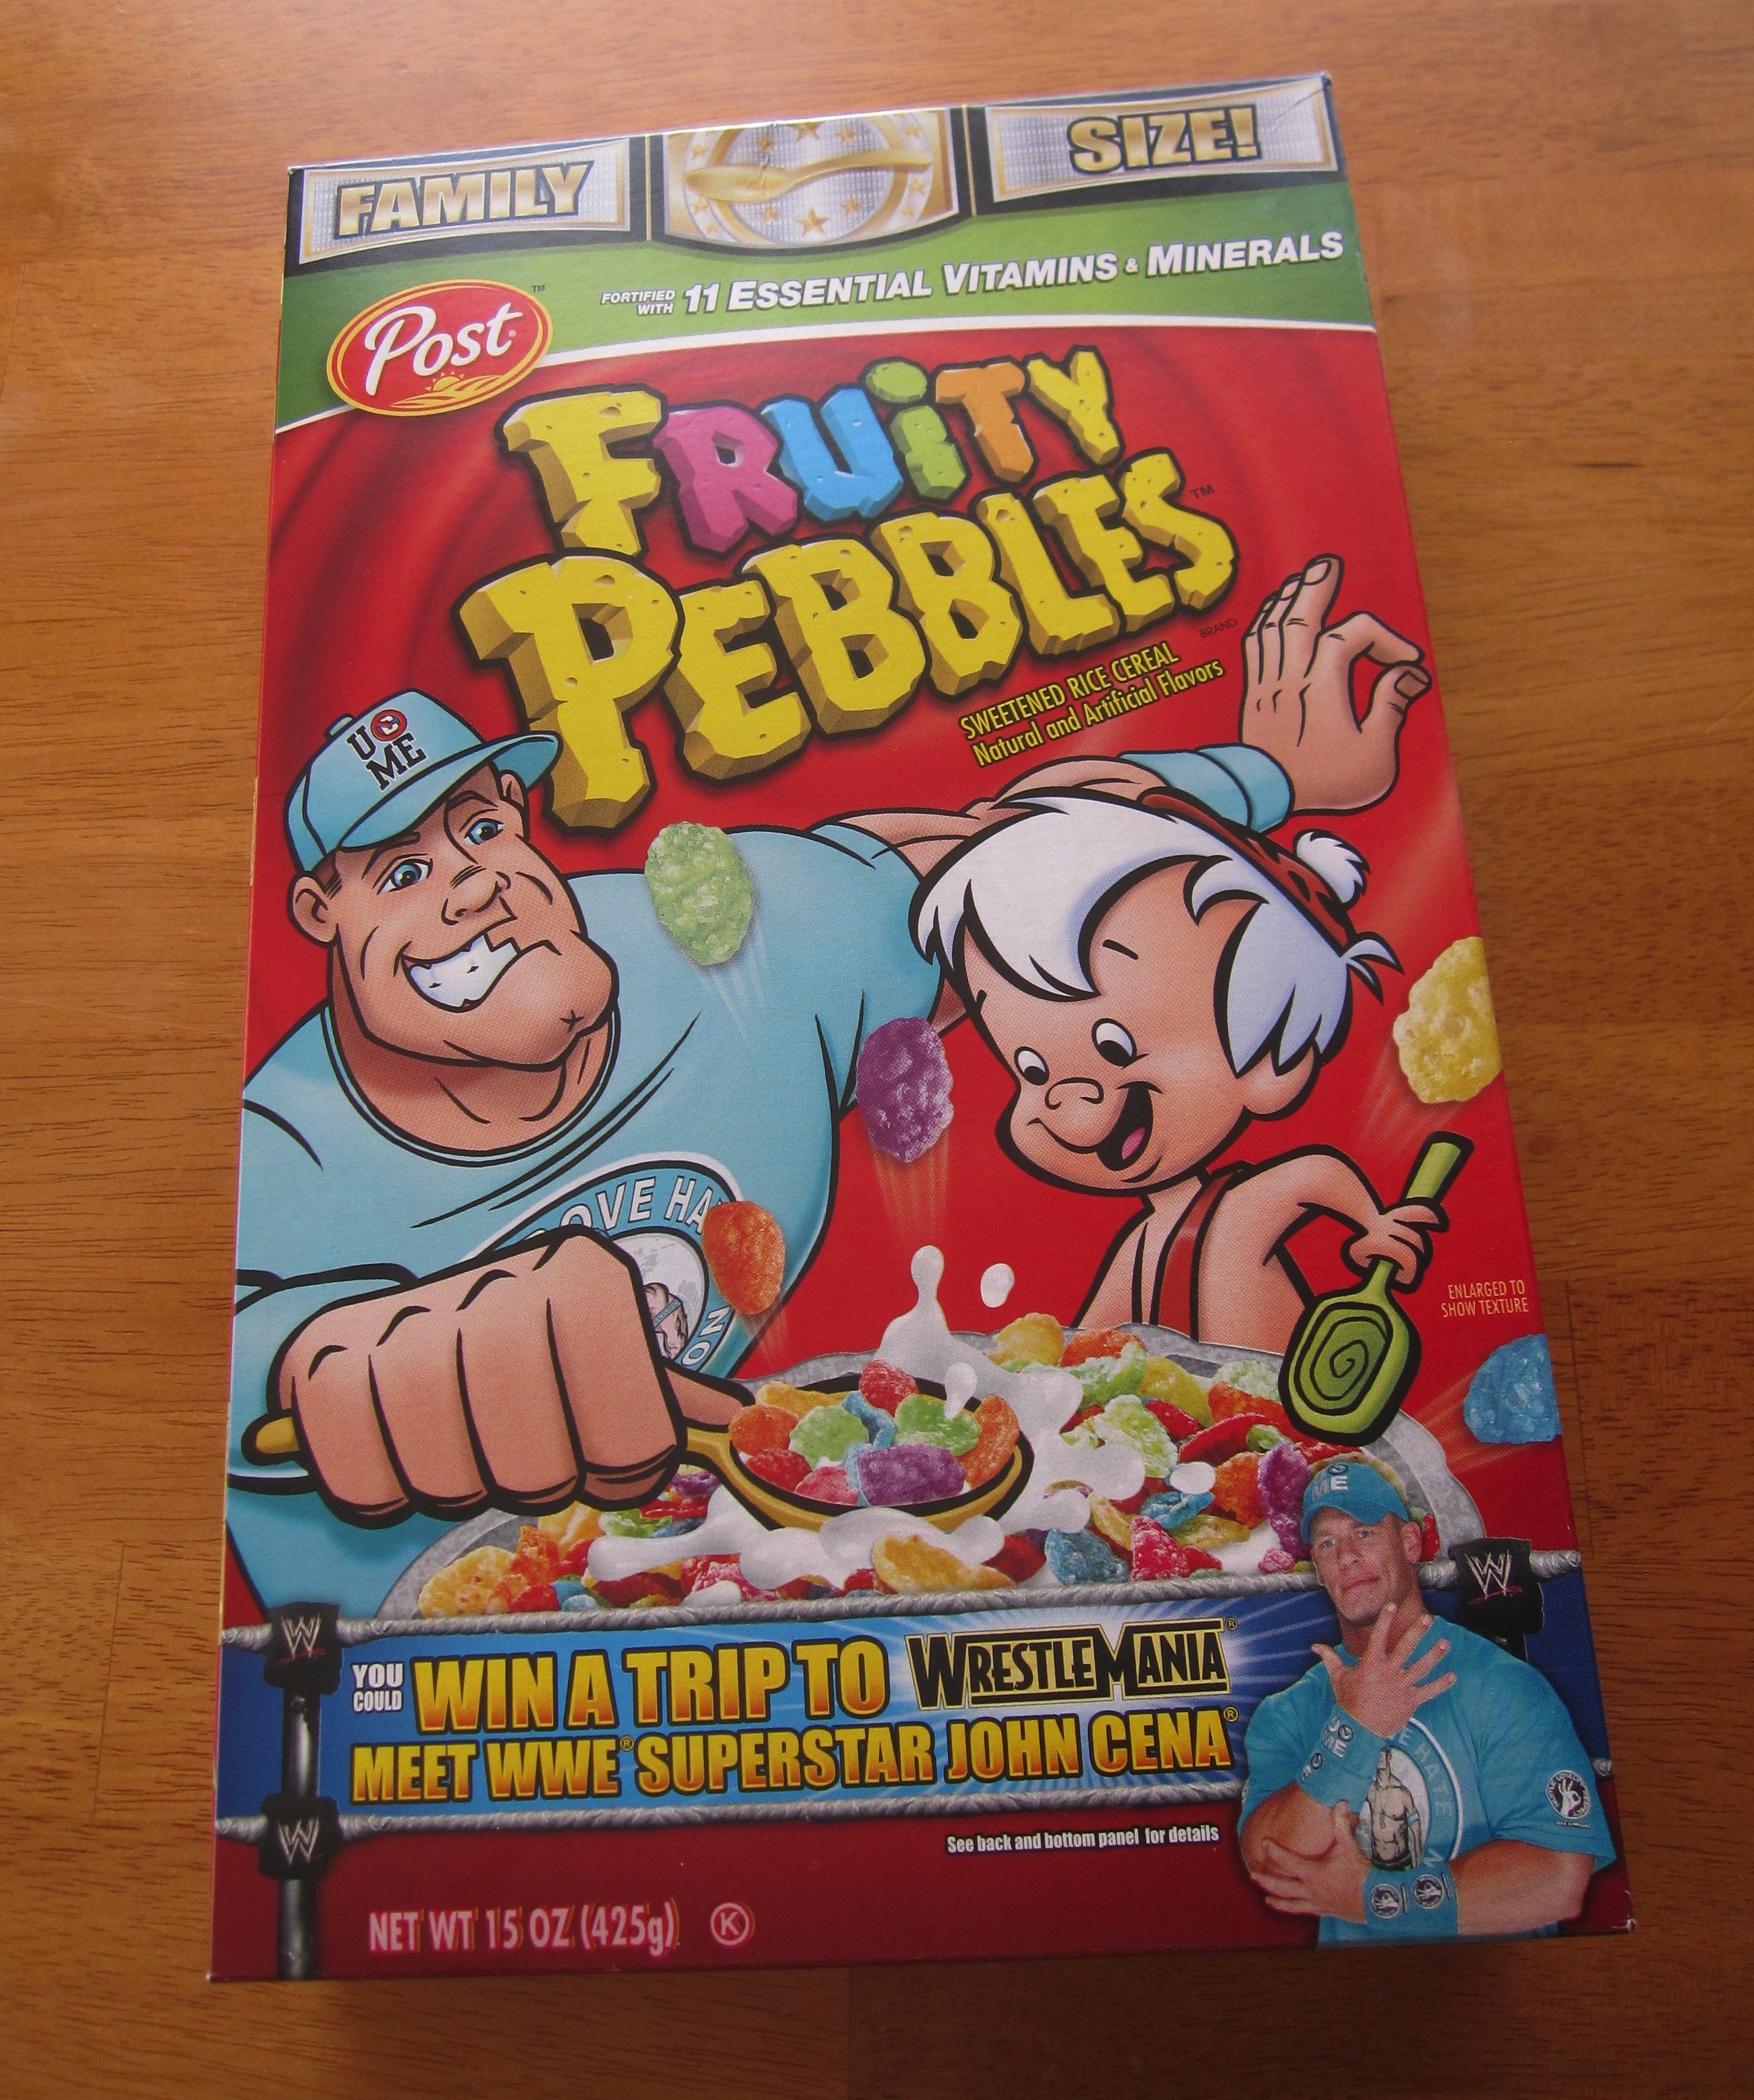 Family Size Box Of Fruity Pebbles